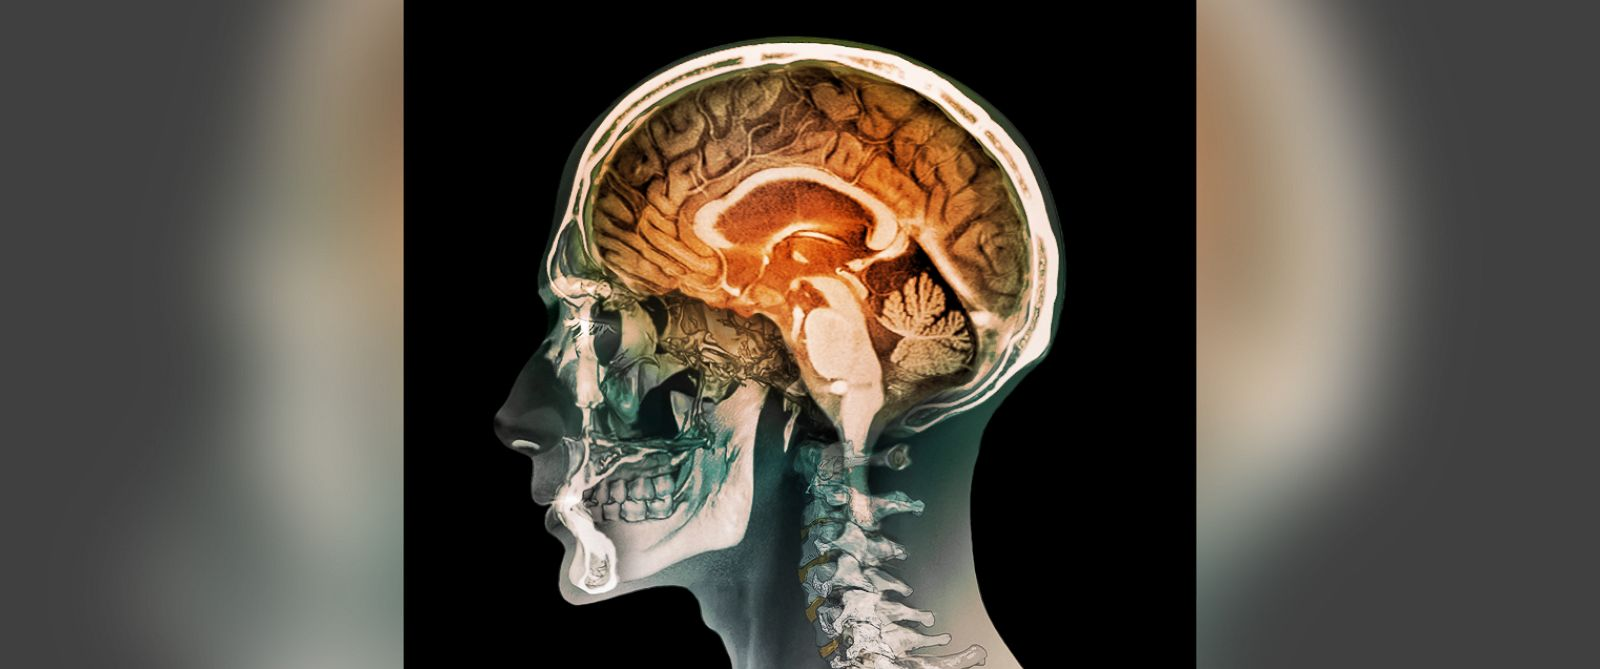 PHOTO: This undated color composite image shows a magnetic resonance imaging (MRI) scan of the brain and 2D and 3D computed tomography (CT) scans of the head and neck of a 35 year old patient.